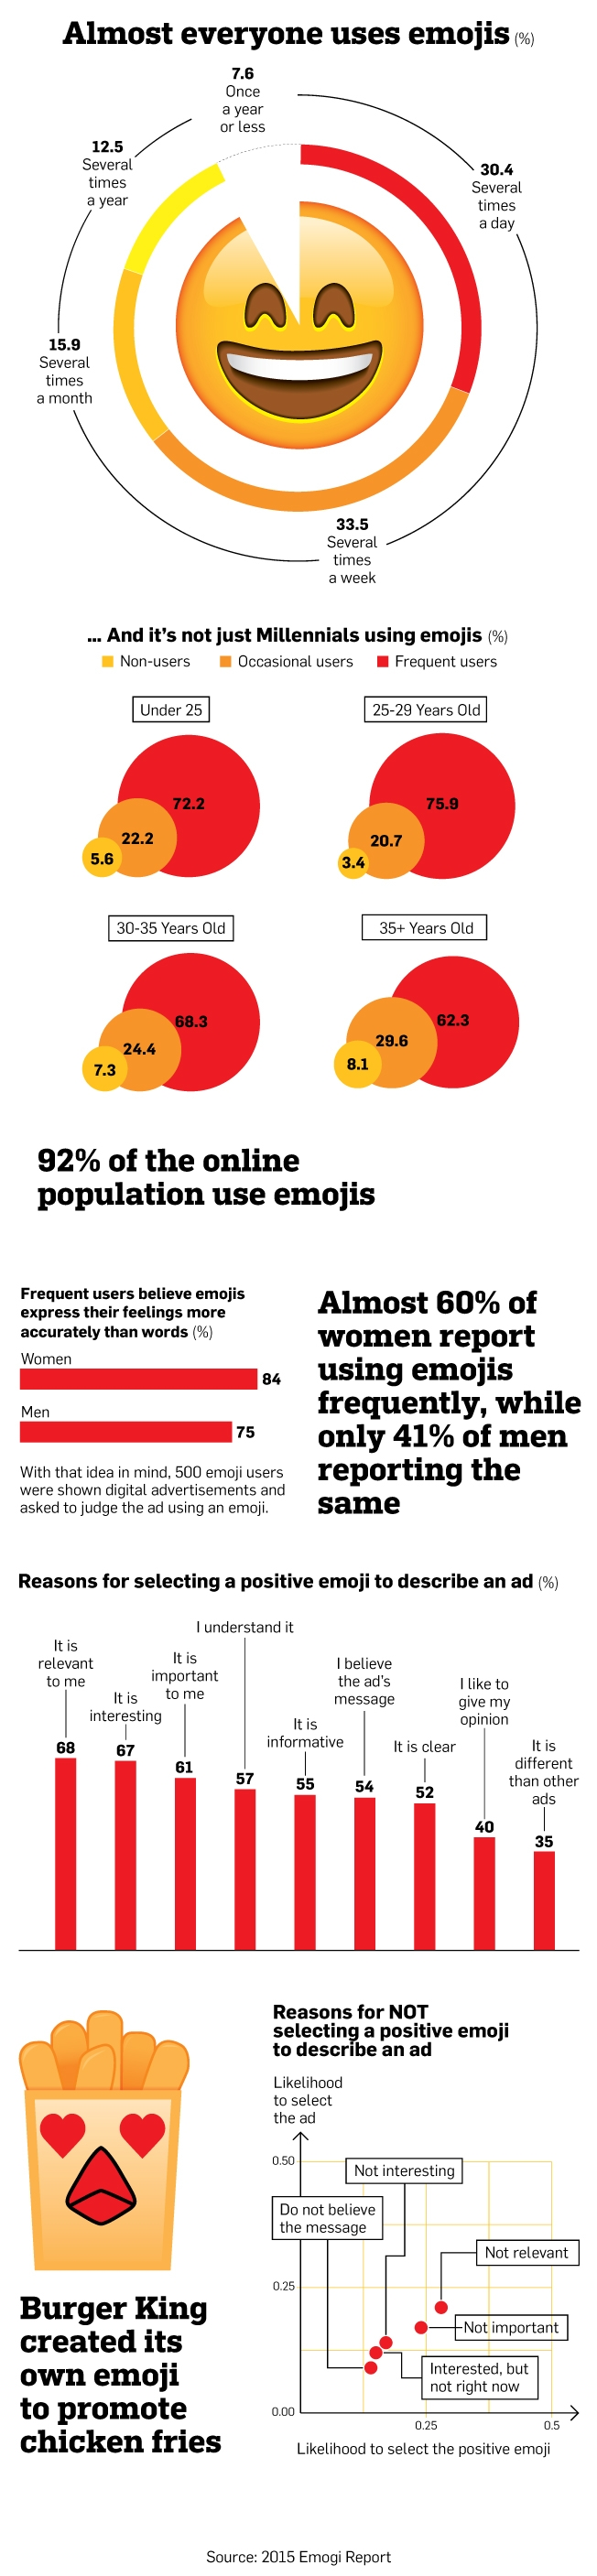 Do you use Emoji in social media marketing? Emoji or emotions are the little smiling faces, which you insert in the messages on social media. They help better express emotions and feelings. As visuals are more interactive than the plain text, they humanize the regular messages. Check these tips on using Emoji in social media marketing to connect with your audience. #socialmedia #socialmediatips #socialmediamarketing #smm #socailmediastrategy #creativeentrepreneur #emoji